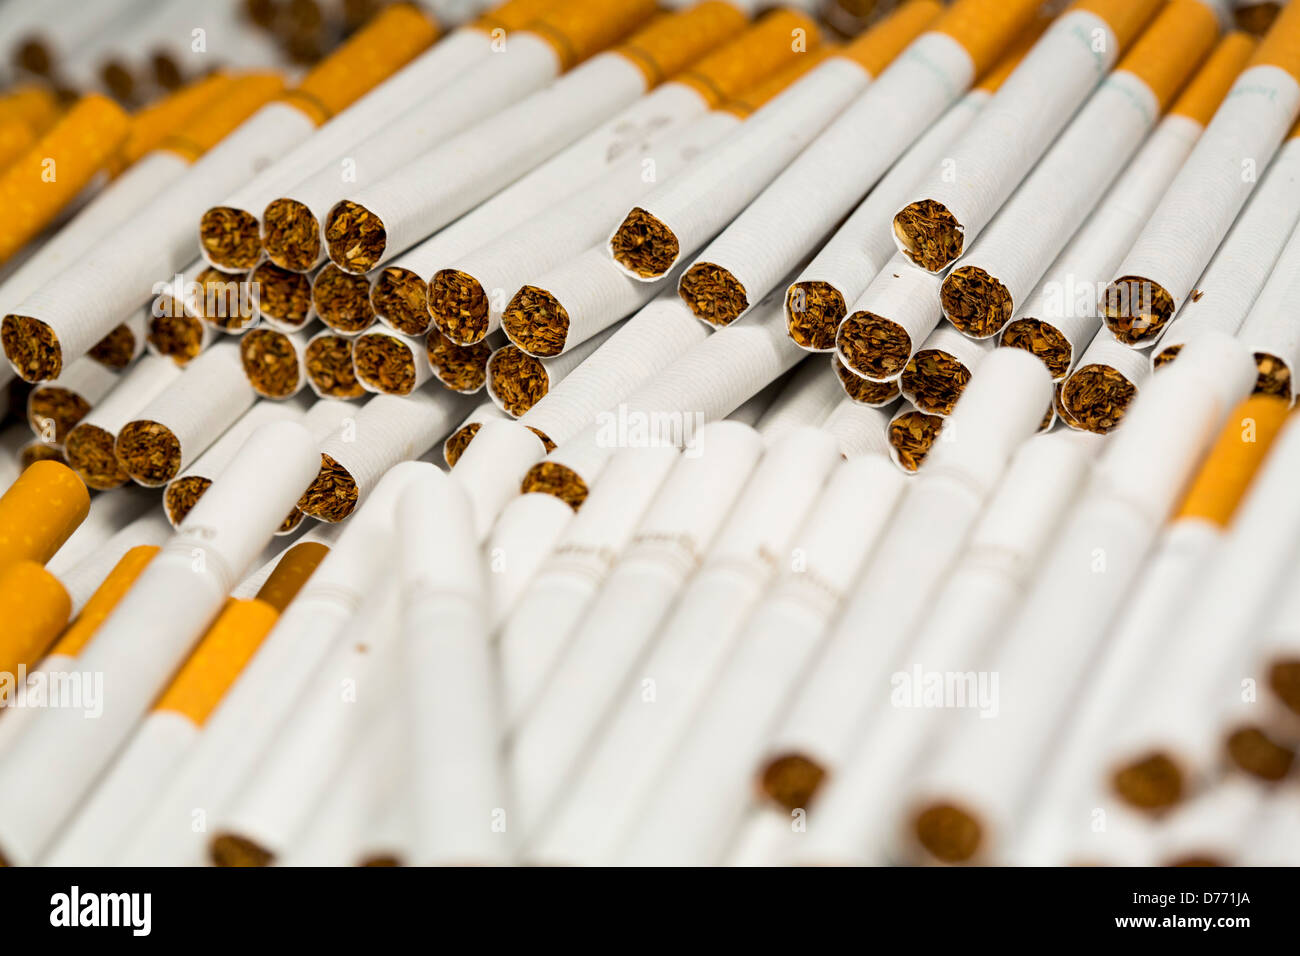 Where are Australia cigarettes made